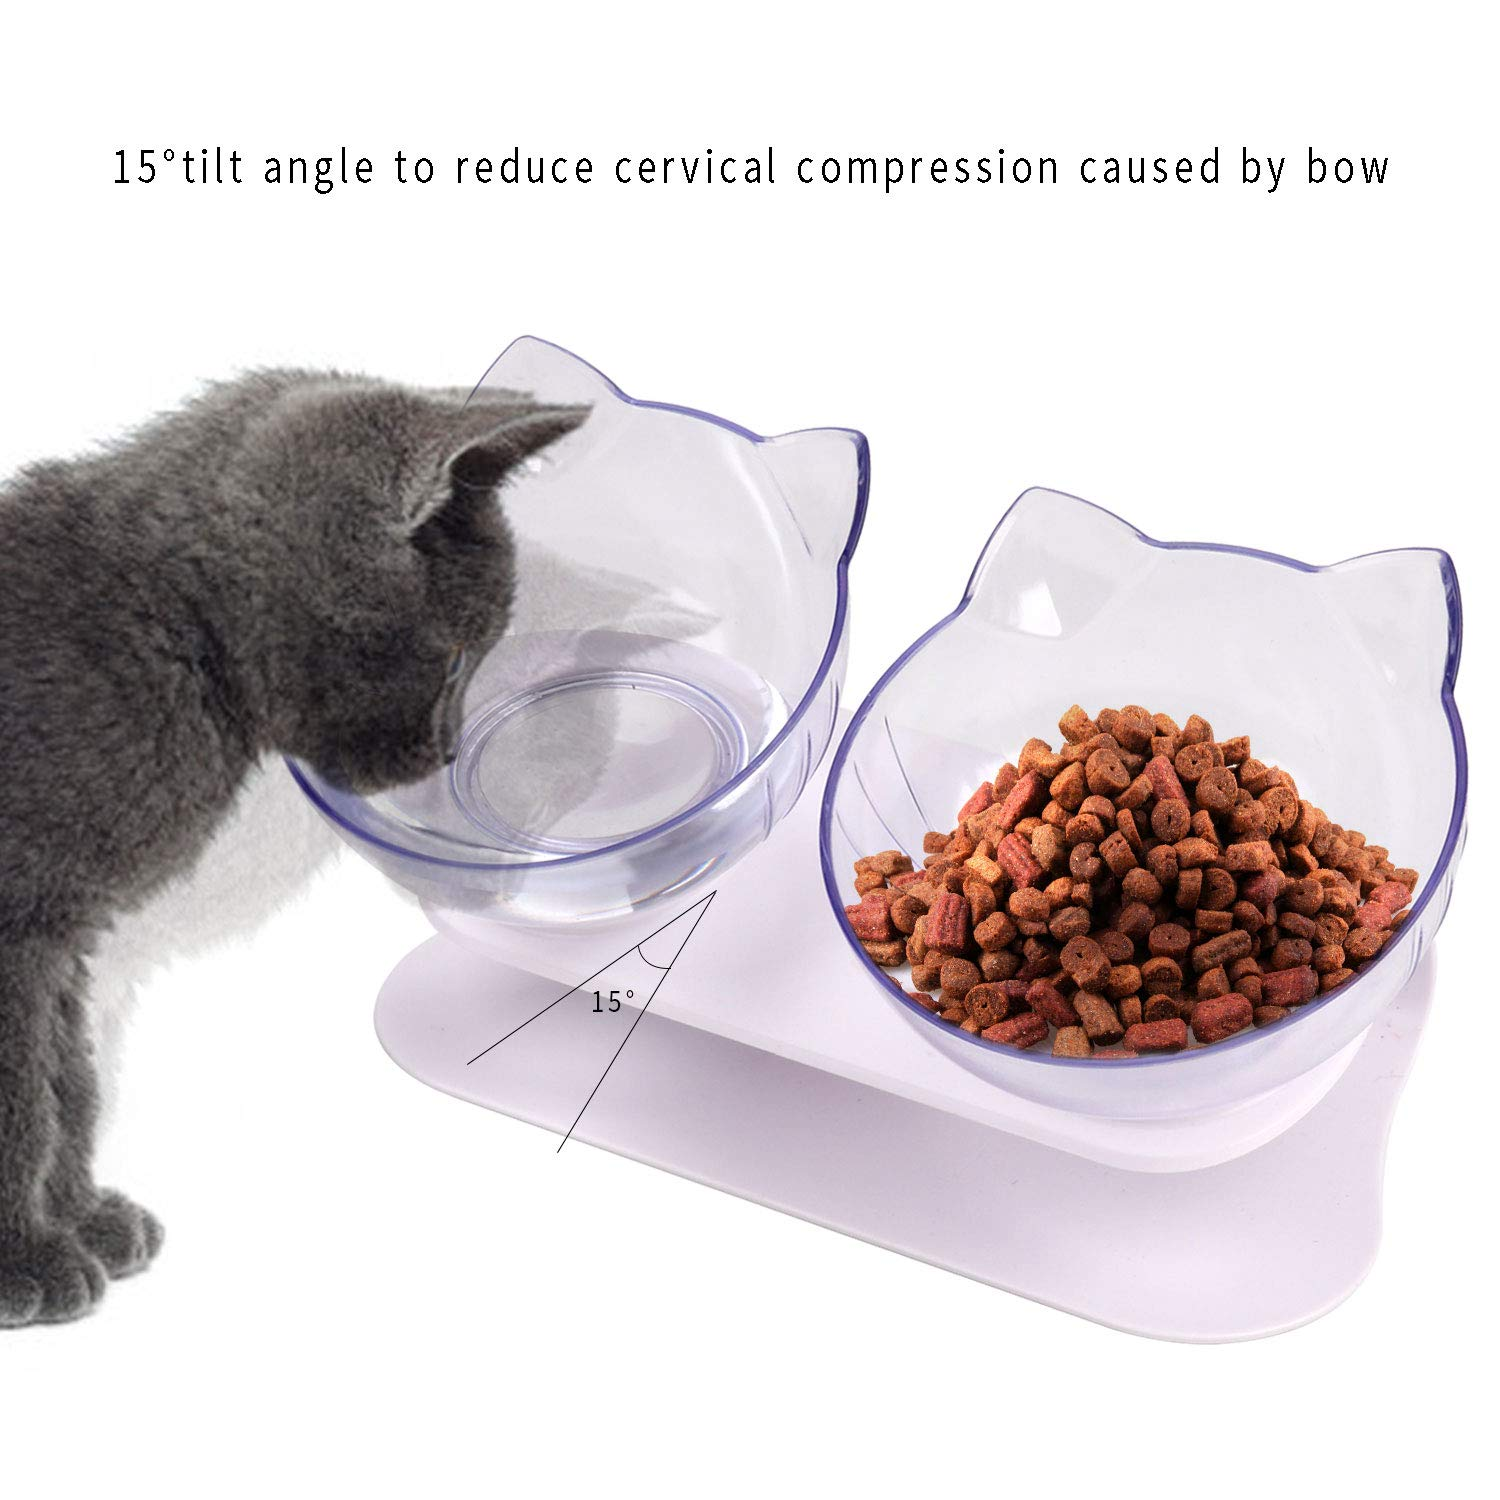 Legendog Double Cat Bowls, Anti Skid Tilting Neck Protective Cat Food Water Bowls, Cat Bowls with Stand, Pet Bowls with Food Scoop for Cats and Small Dogs